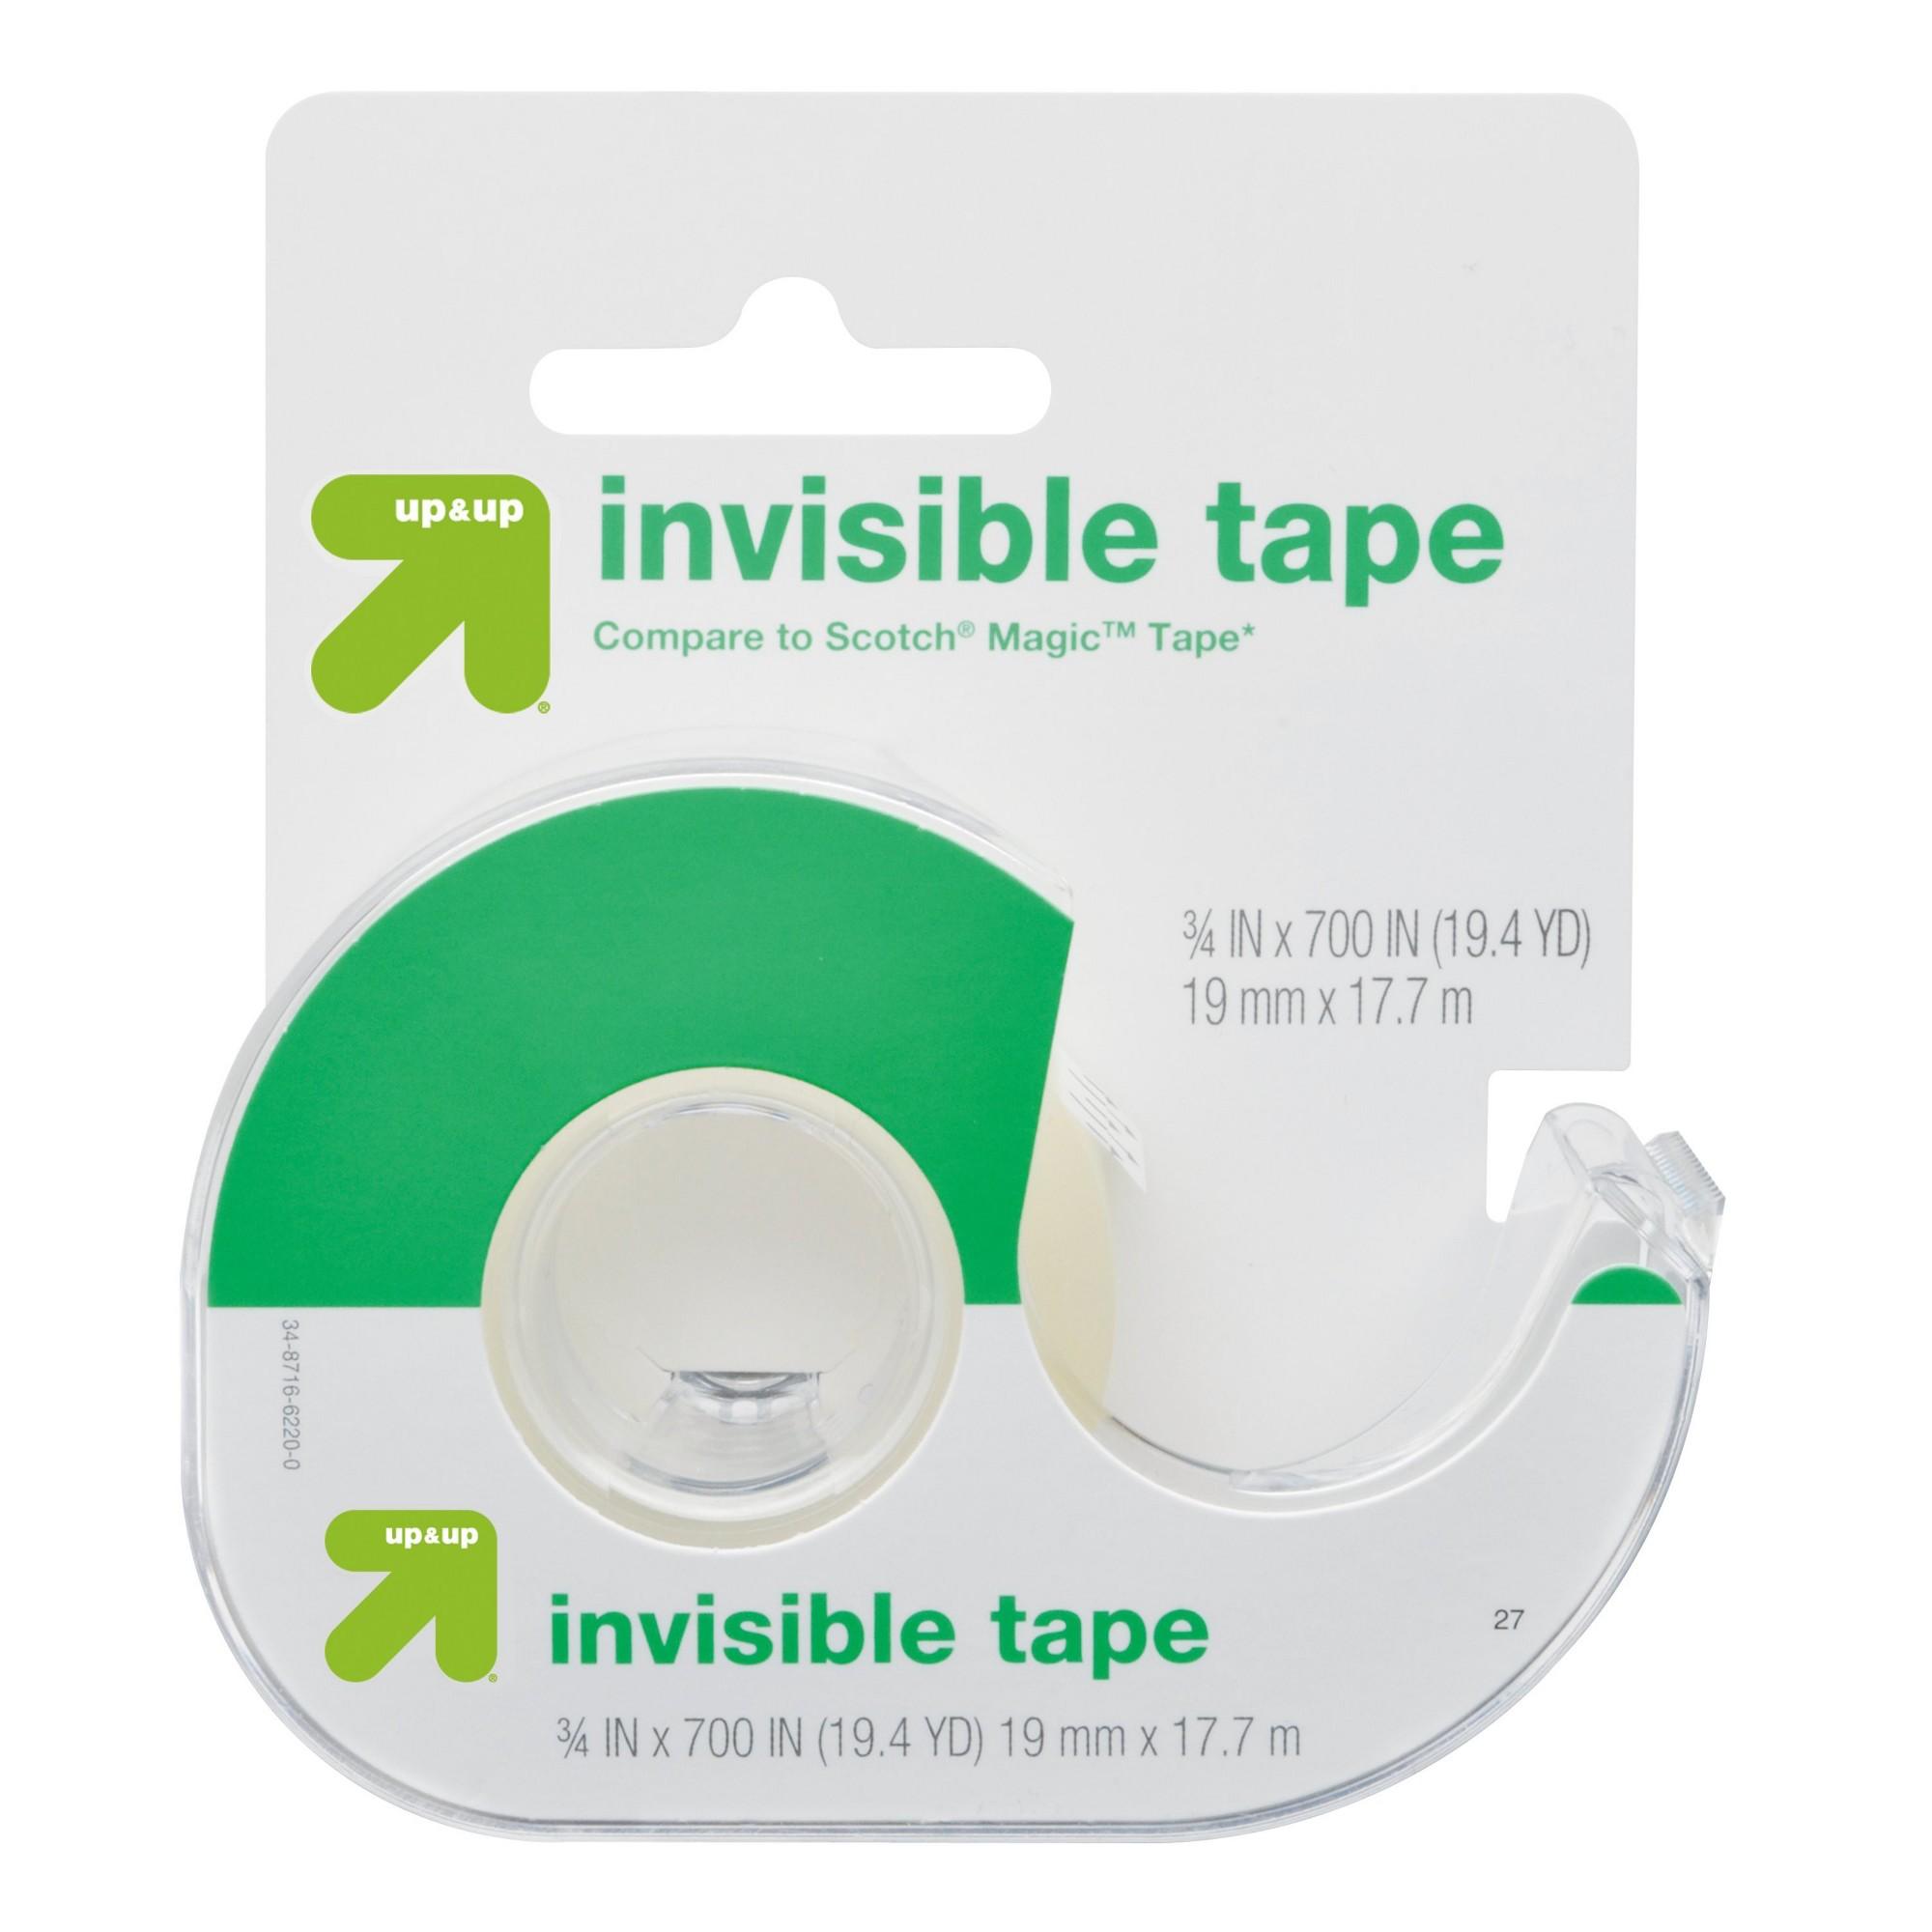 Invisible Tape (Compare to Scotch Magic Tape) - Up&Up , Clear